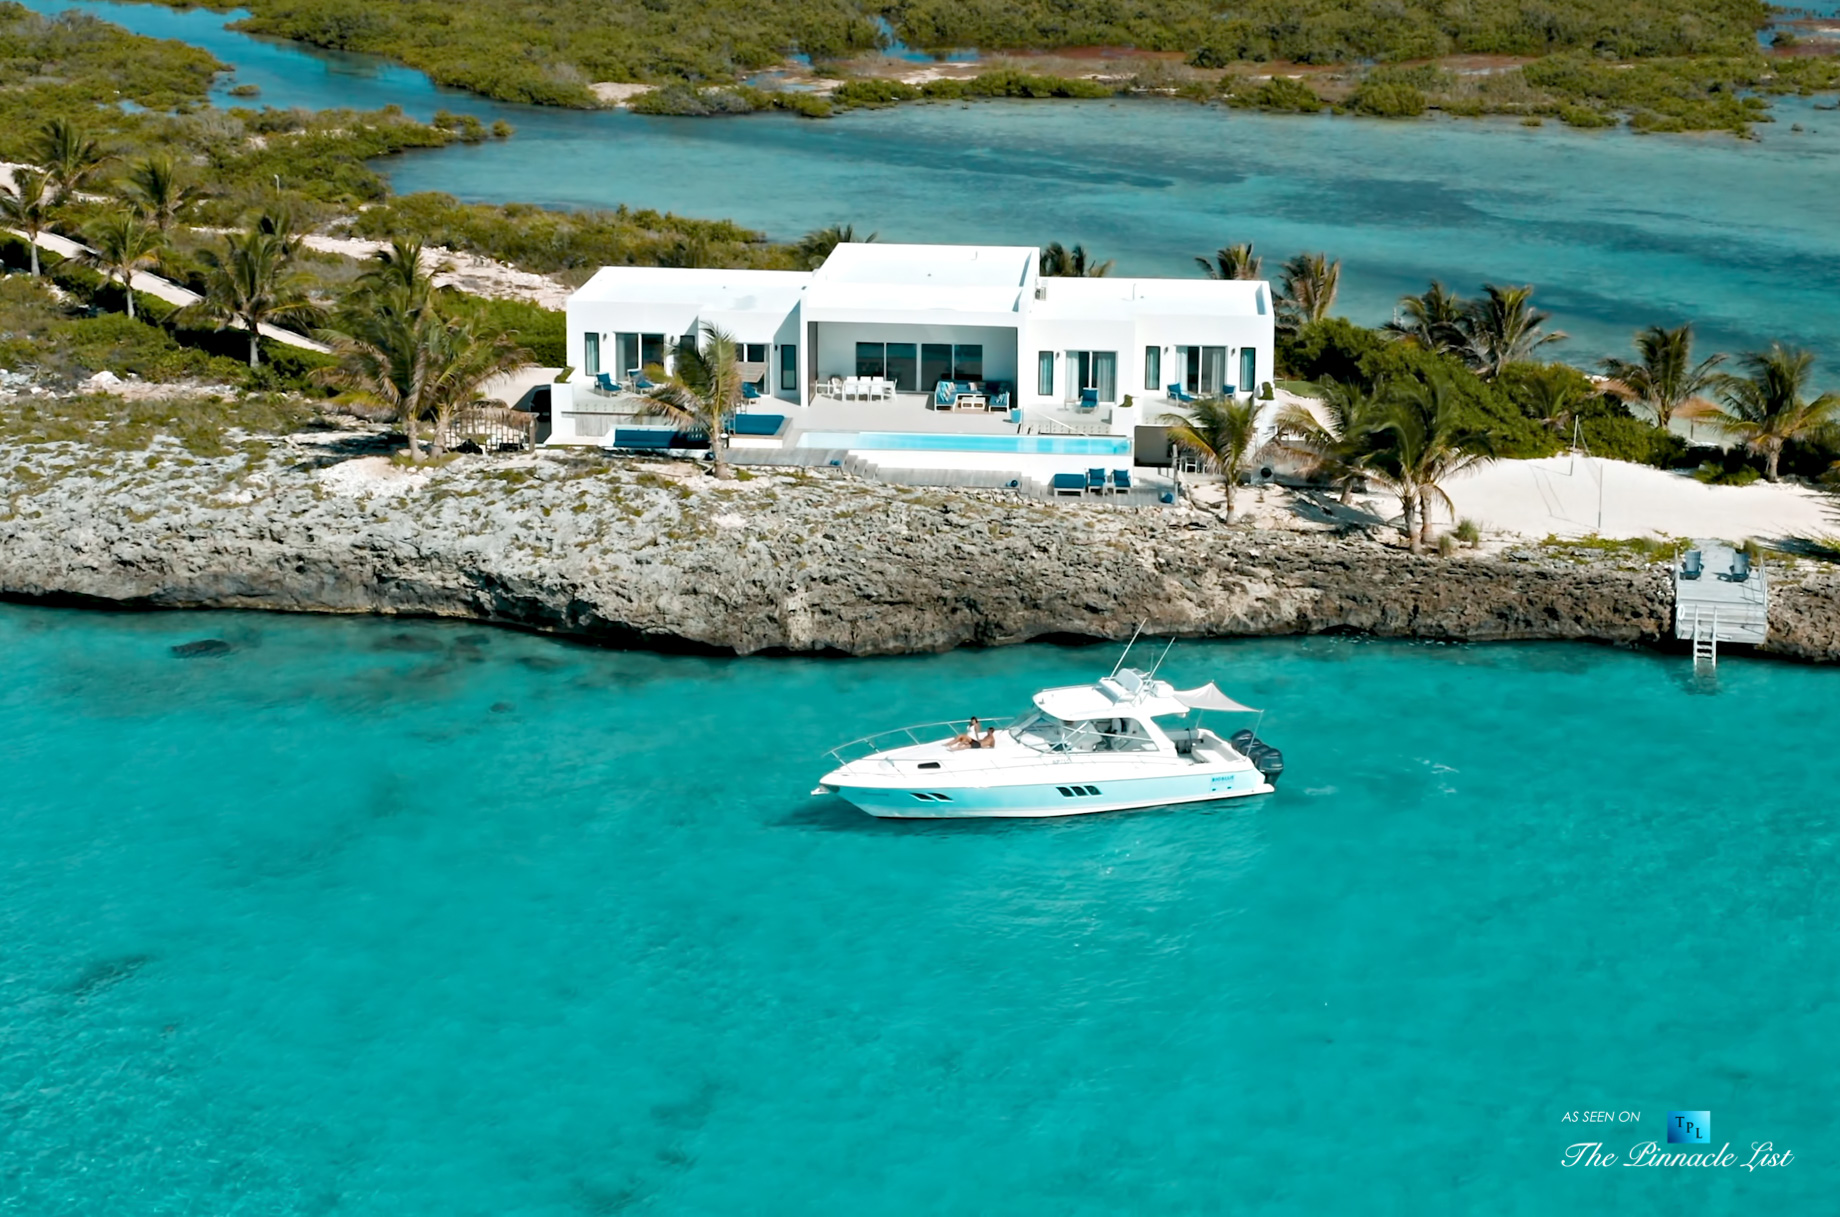 Tip of the Tail Villa – Providenciales, Turks and Caicos Islands – Aerial View with Yacht – Luxury Real Estate – South Shore Peninsula Home